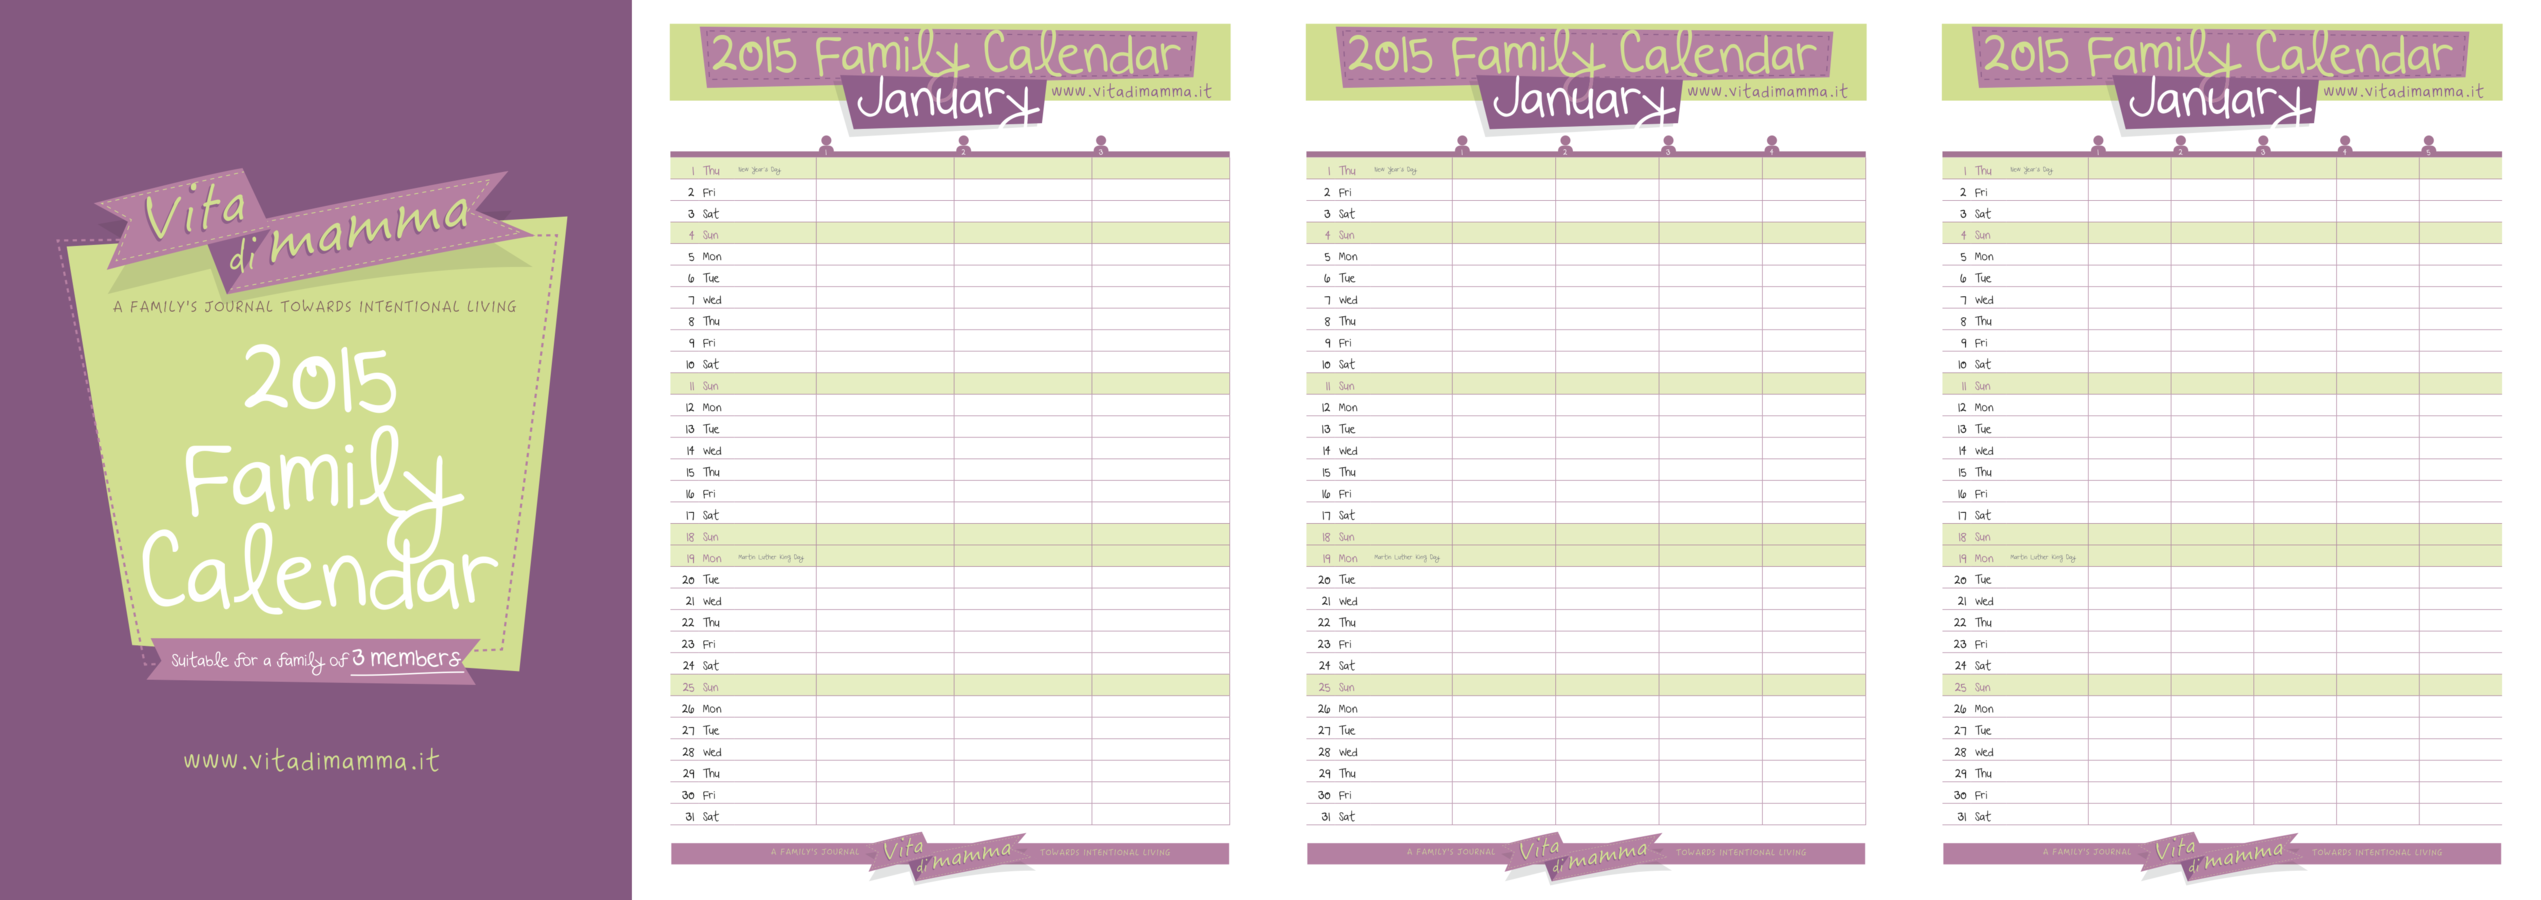 Family Calendars : Free printable family calendar by vita di mamma is